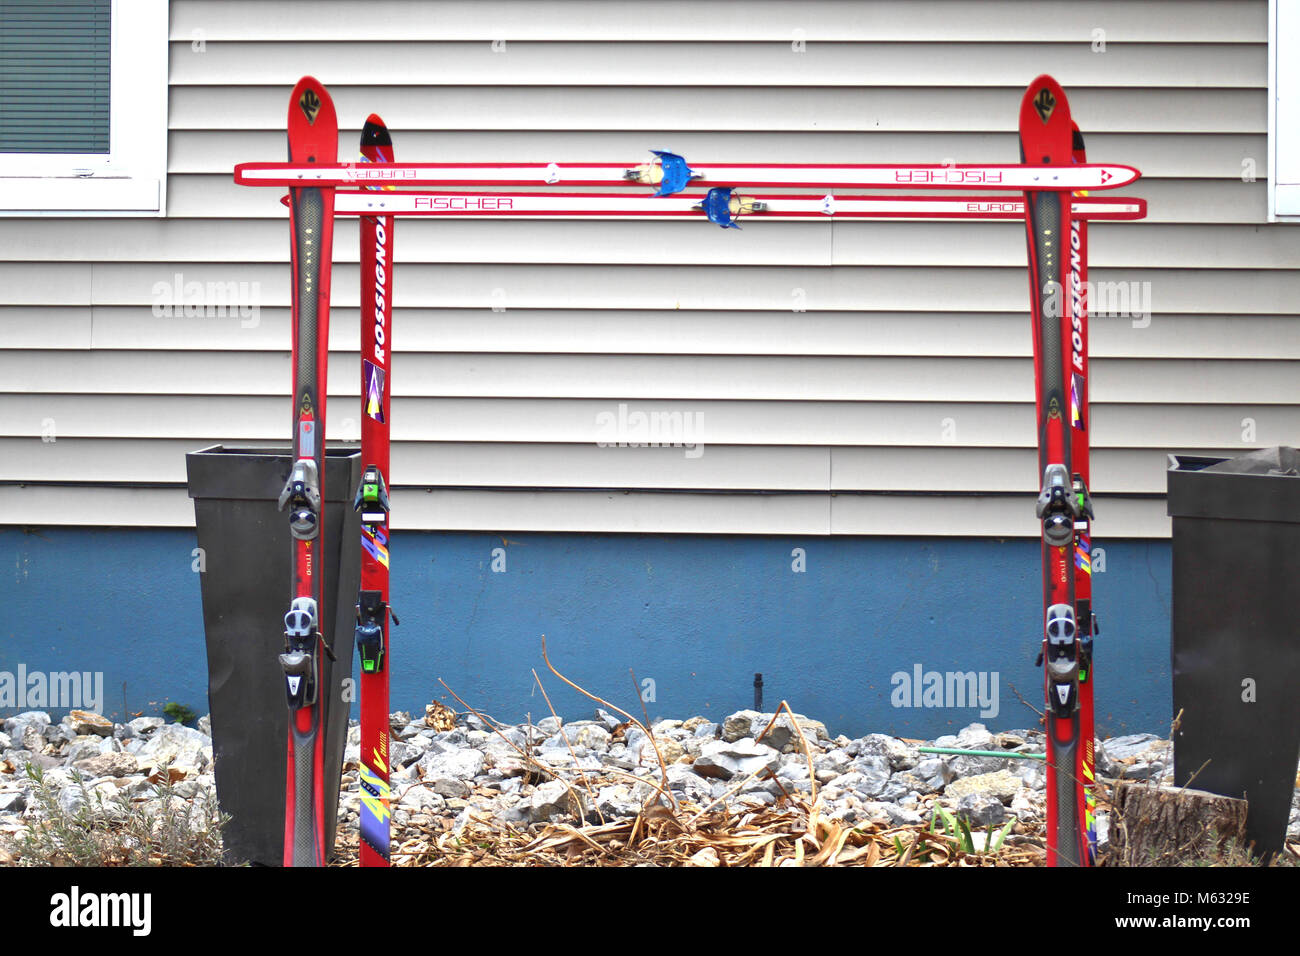 skis on the side of a house in the Avenues SEC Utah. taken with my Cannon Rebel t6 dslr camera. - Stock Image